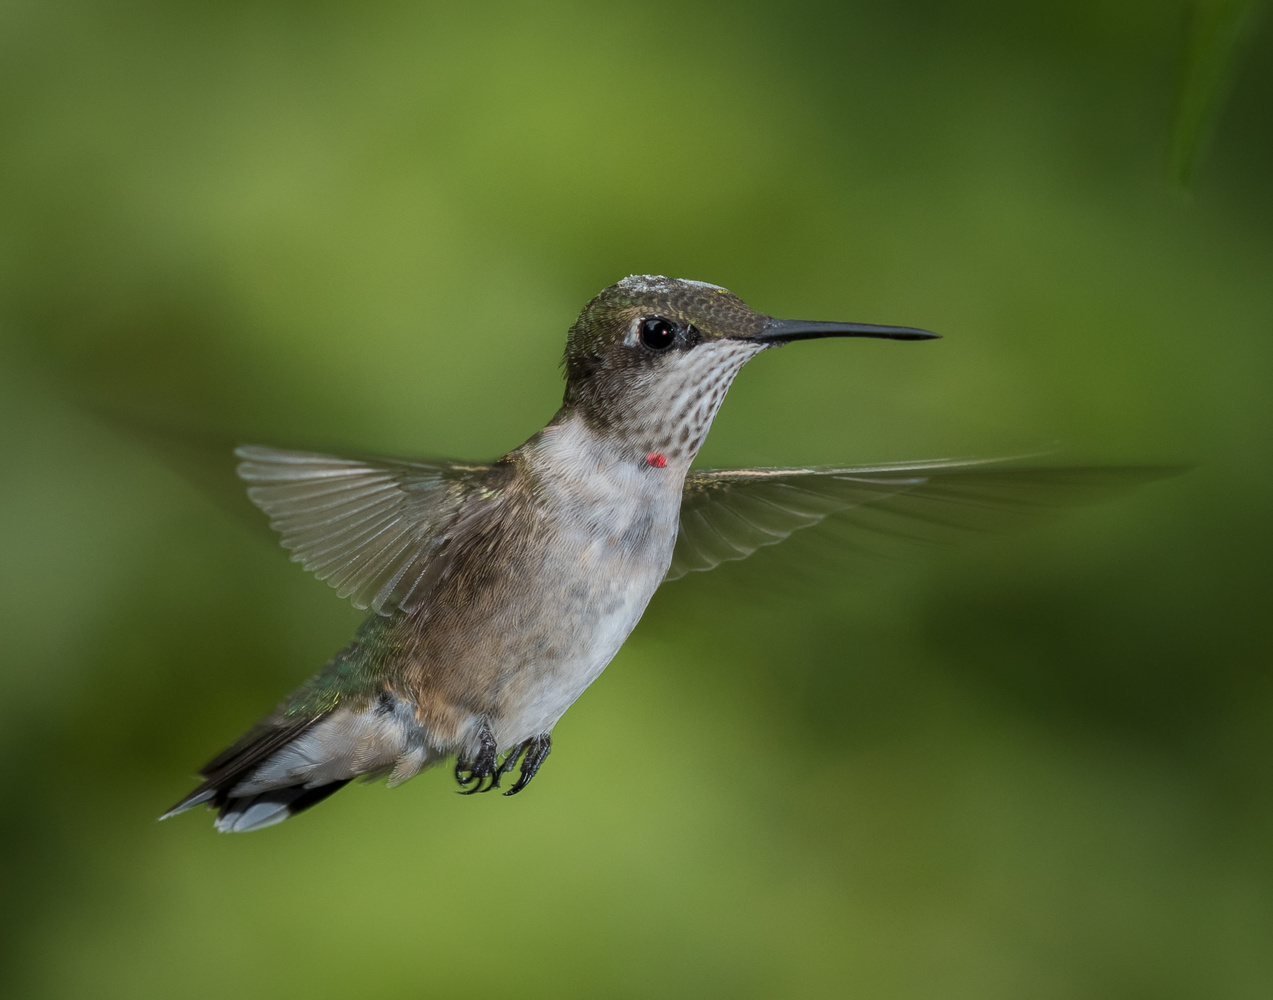 Young Male Ruby Throated Hummingbird by Dick Blystone